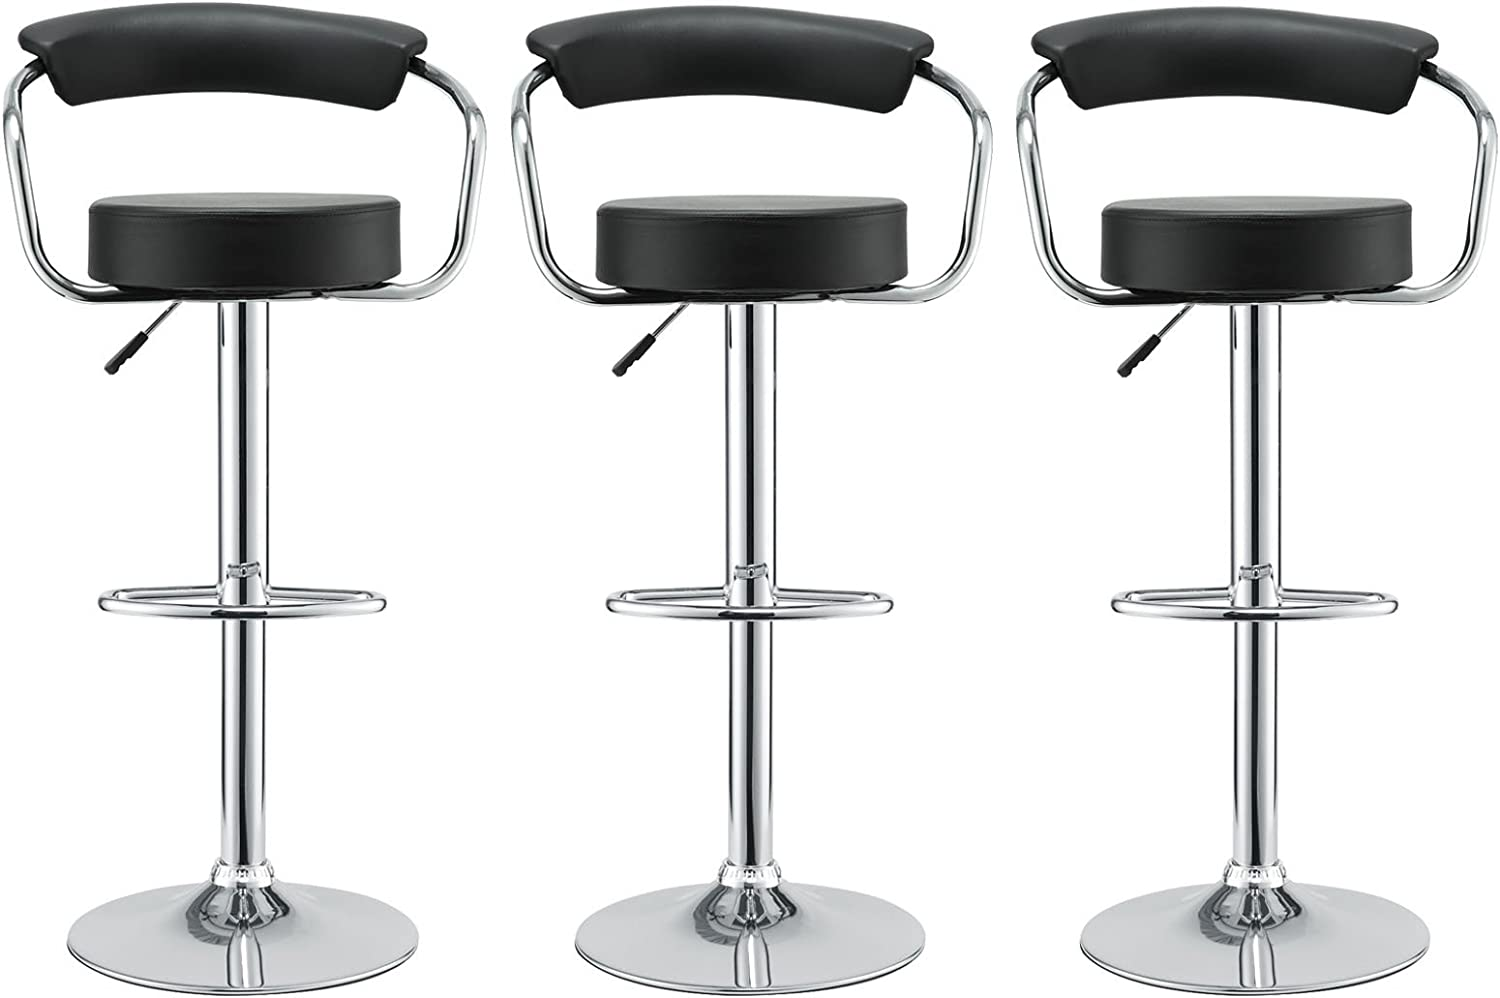 Modway Diner Vintage Modern Faux Leather Upholstered Three Adjustable Swivel Bar Stools in Black